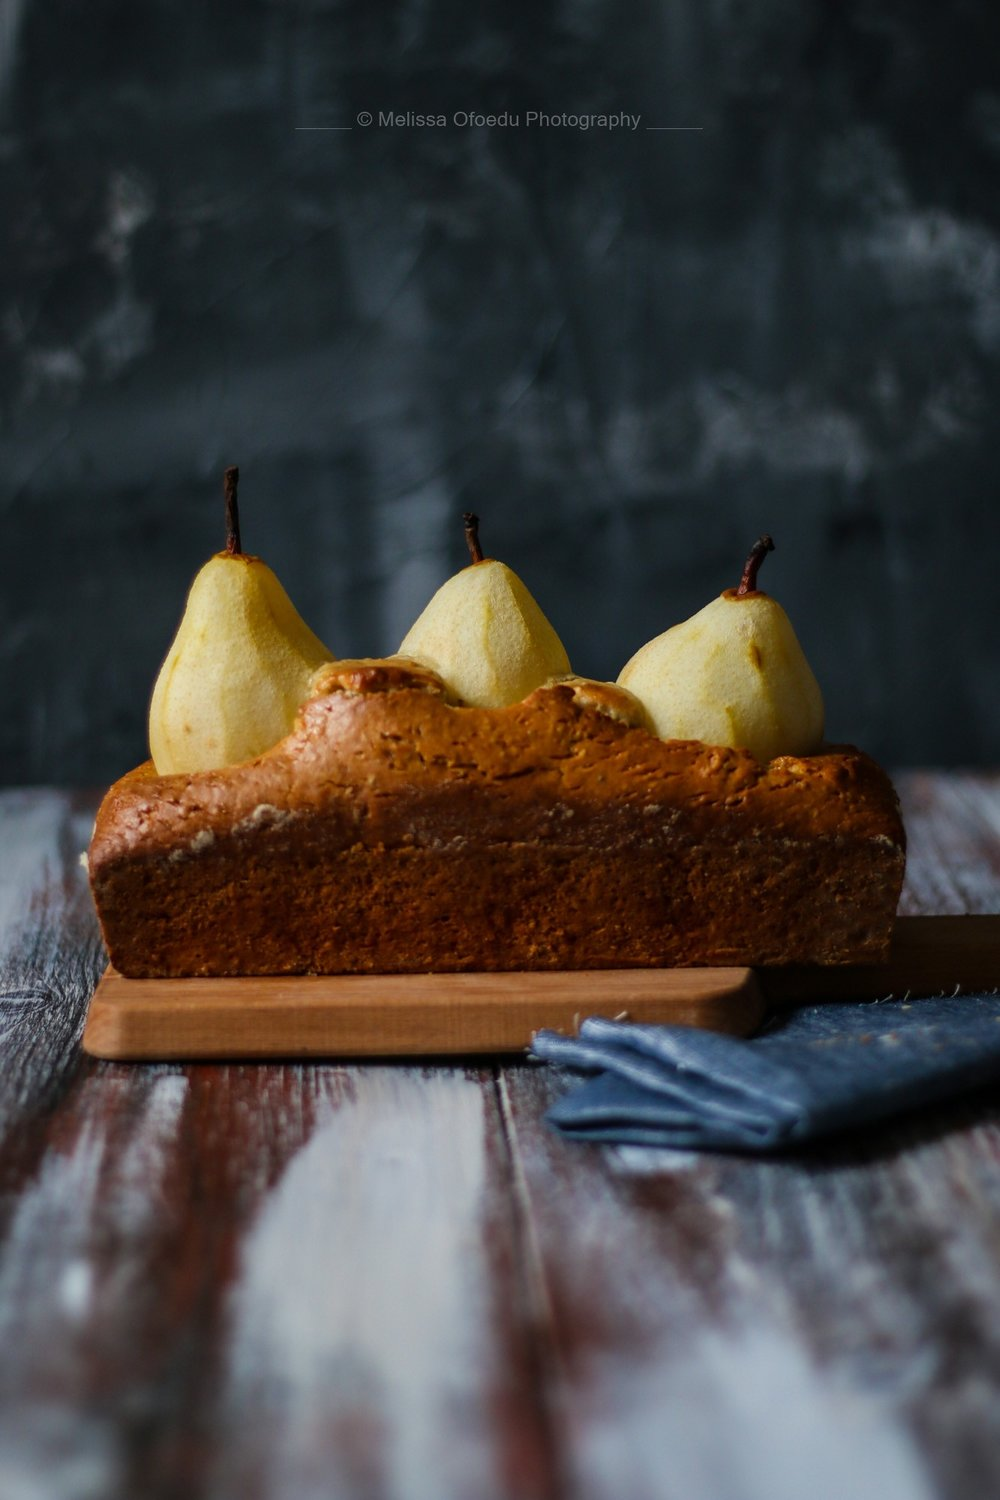 Orange-Blossom-poached-pears-on-Chia-Cake-Loaf-by-Melissa-Ofoedu-for-A-Sweet-Point-of-View-3.jpg